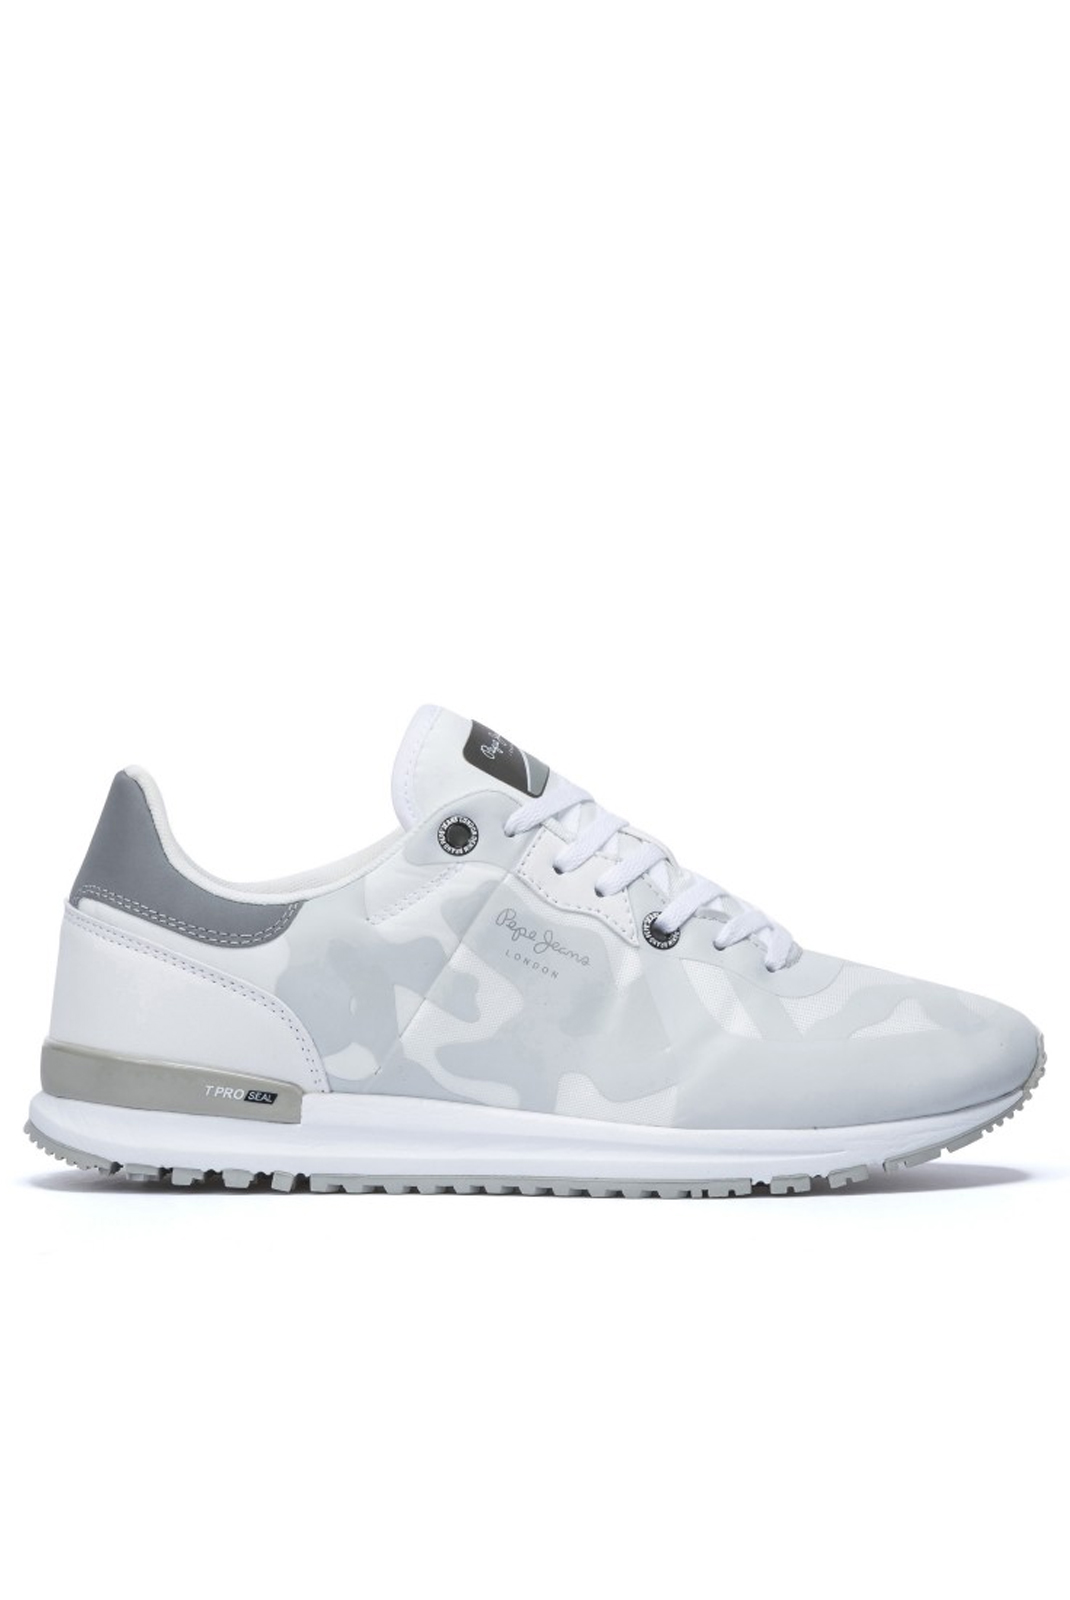 Baskets / Sport  Pepe jeans PMS30413 TINKER PRO SEAL 800 WHITE